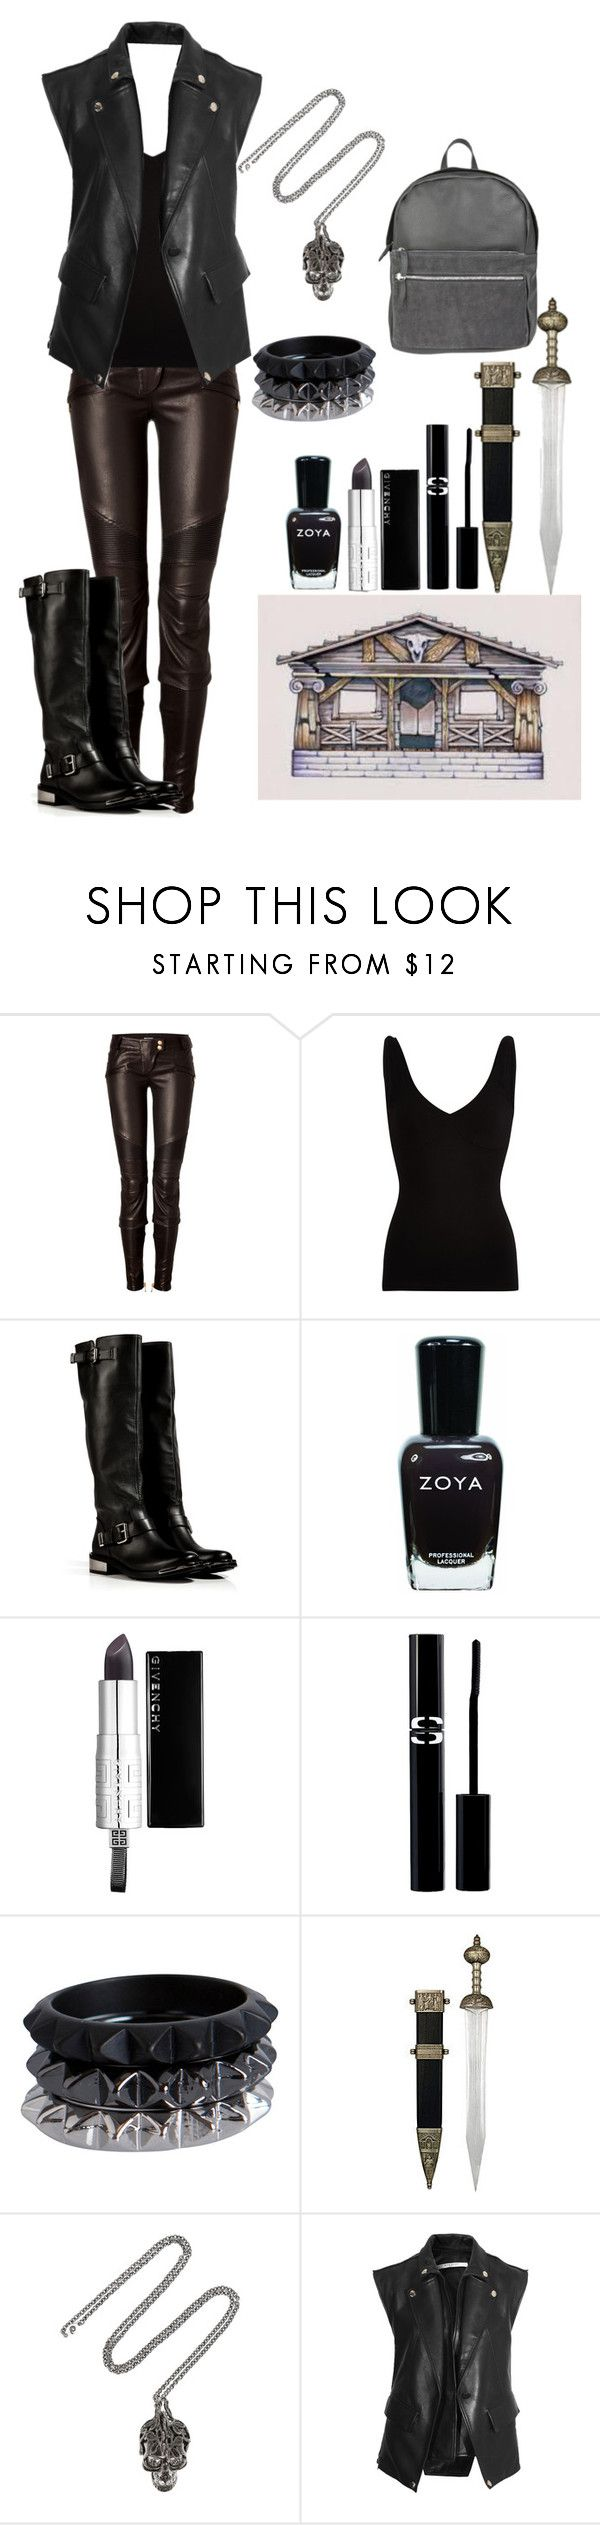 """daughter of Hades ( Ready for War)"" by archie-martin-potterhead ❤ liked on Polyvore featuring Balmain, Comptoir Des Cotonniers, Le Silla, Zoya, Givenchy, Sisley, Pieces, S.W.O.R.D., Alexander McQueen and Park House"